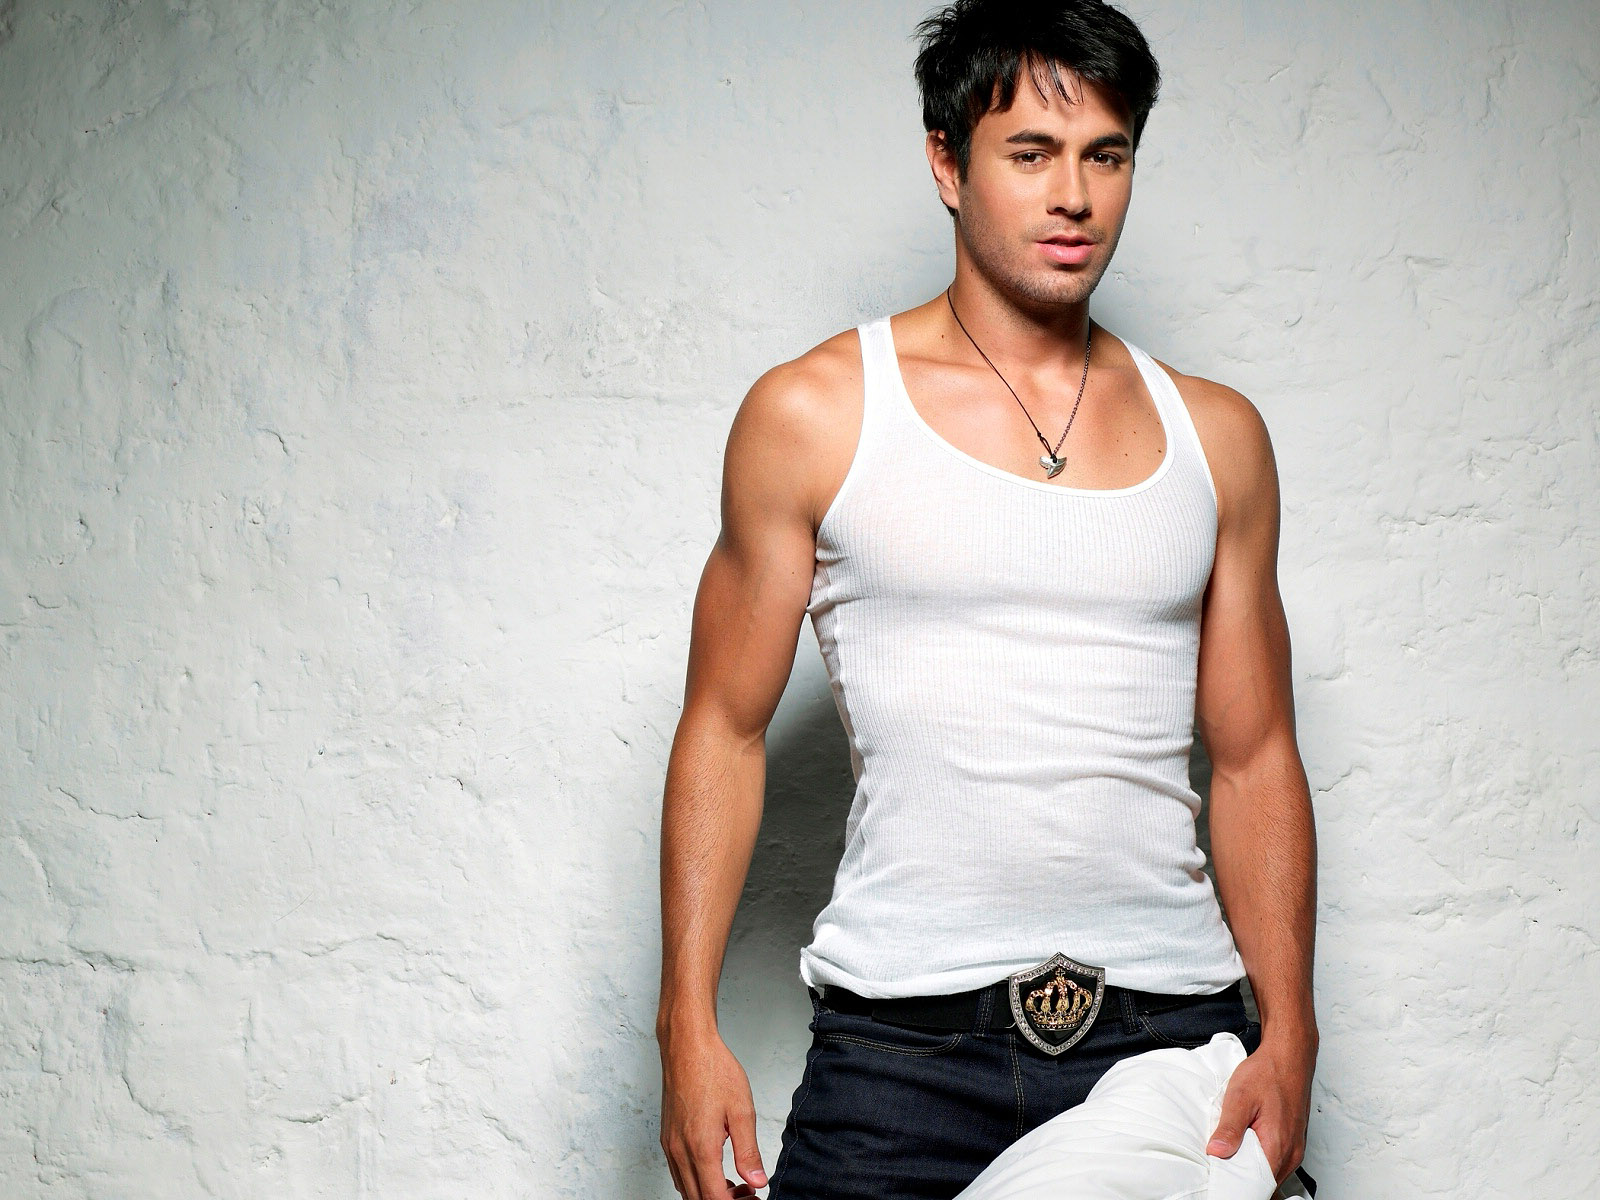 http://4.bp.blogspot.com/-U7RxI8F3mFs/TuXG_XgJTeI/AAAAAAAAAnY/wwCgUAhK8gI/s1600/Enrique-Iglesias-pictures-desktop-Wallpapers-HD-photo-images-12.jpg